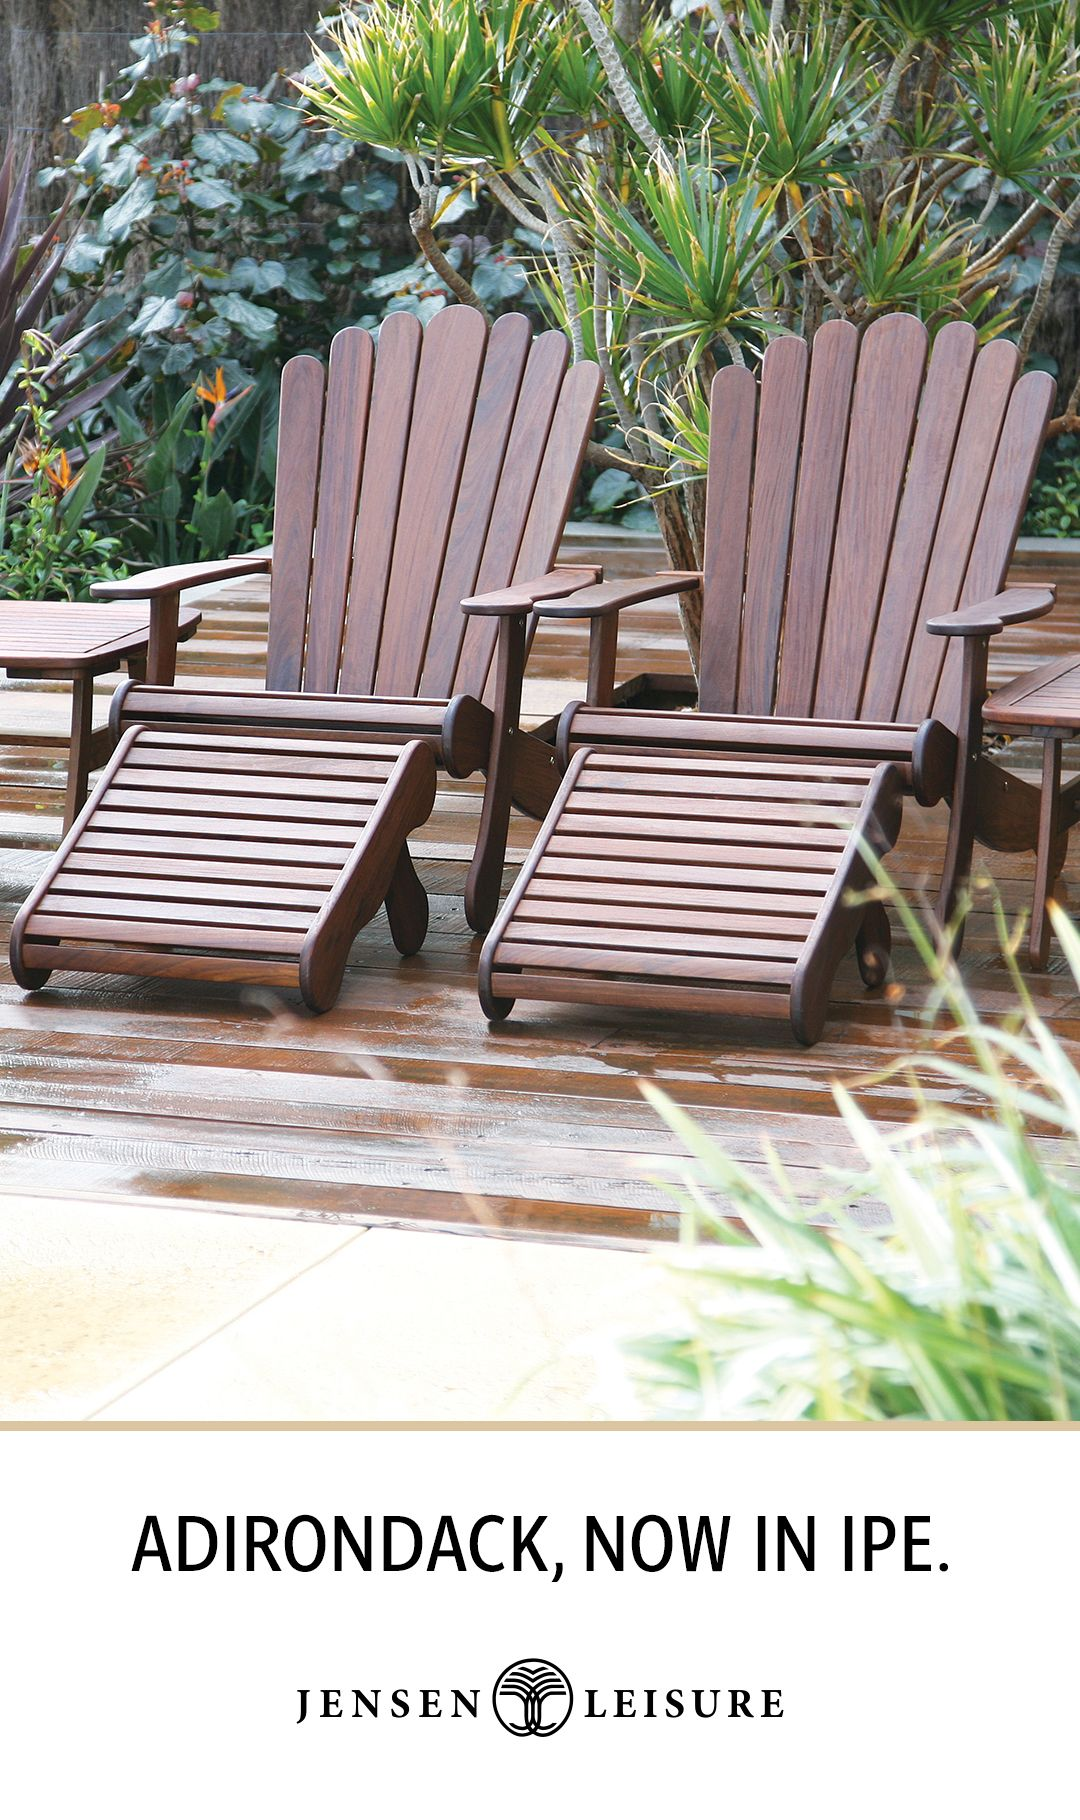 Ipe Wood Adirondack Chair And Footrest From Jensen Leisure Wood Patio Furniture Outdoor Patio Furniture Concrete Patio Makeover